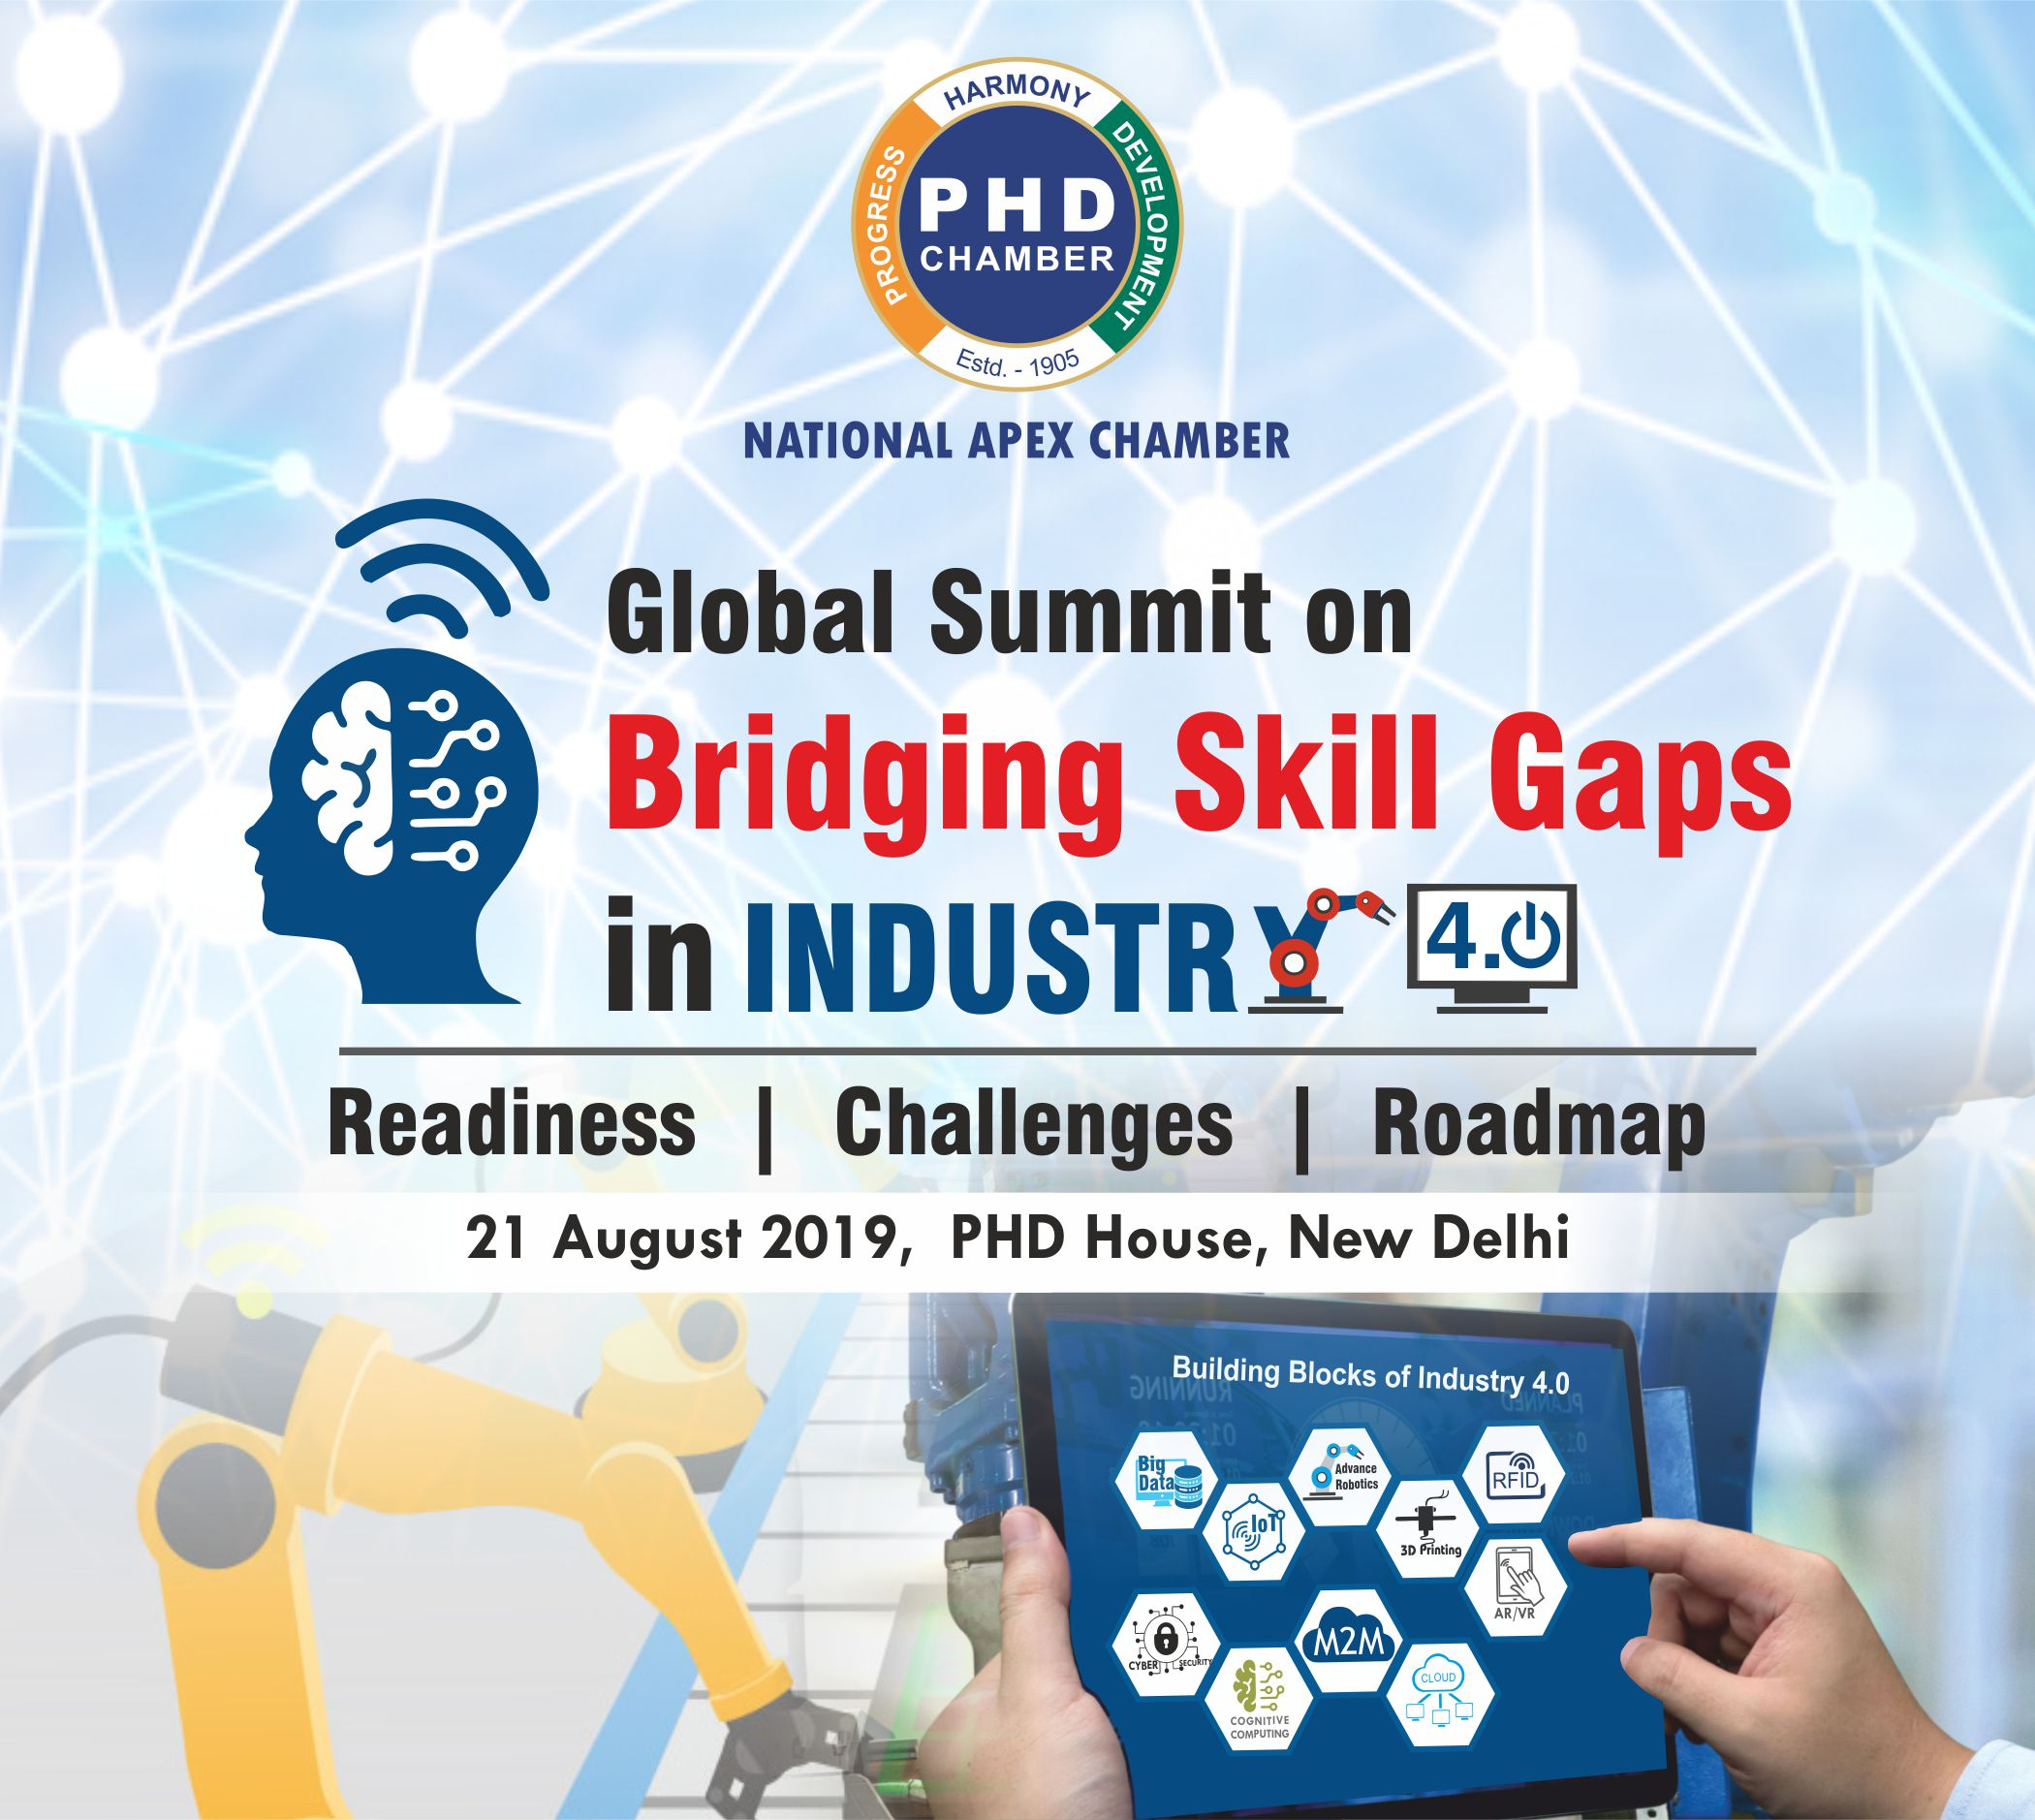 Global Summit on Bridging Skill Gaps in Industry 4.0